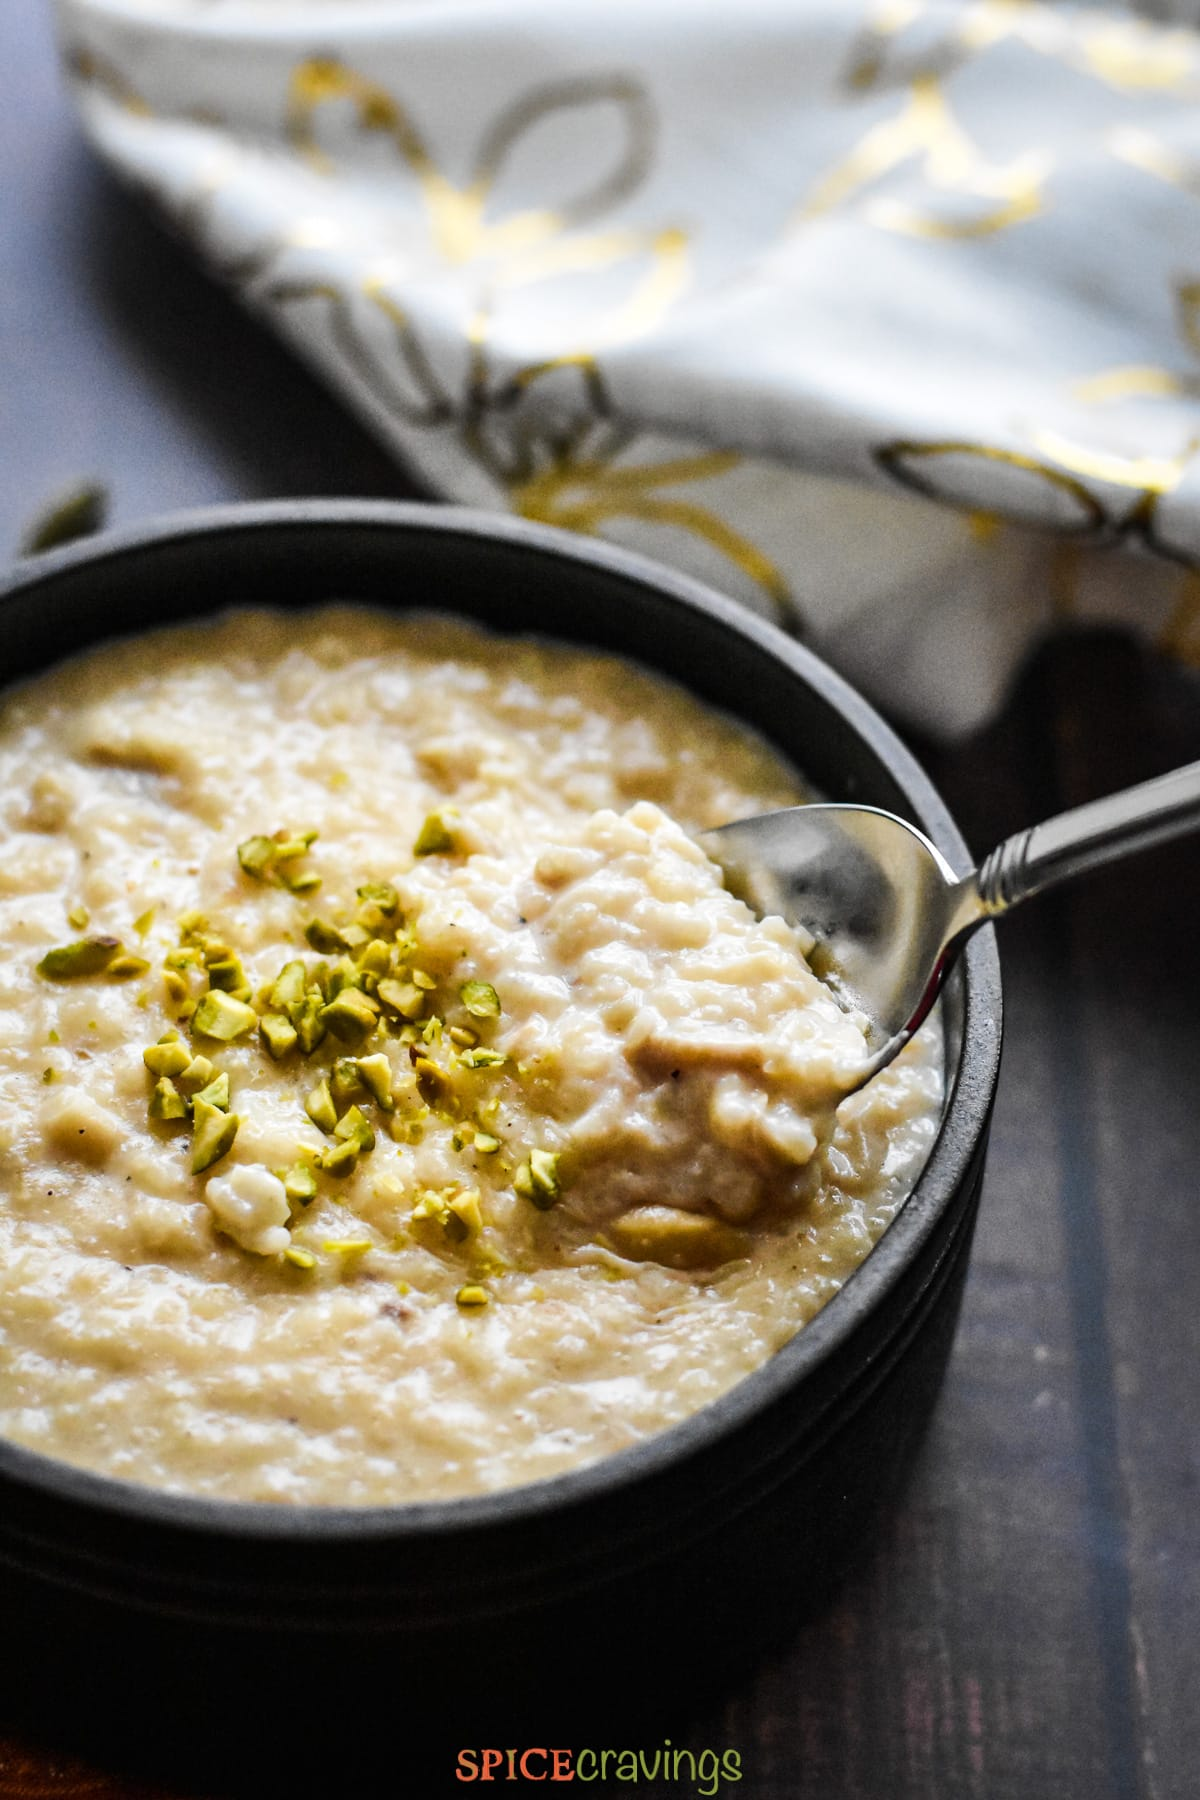 Indian rice pudding, kheer, served in a black bowl, garnished with pistachios